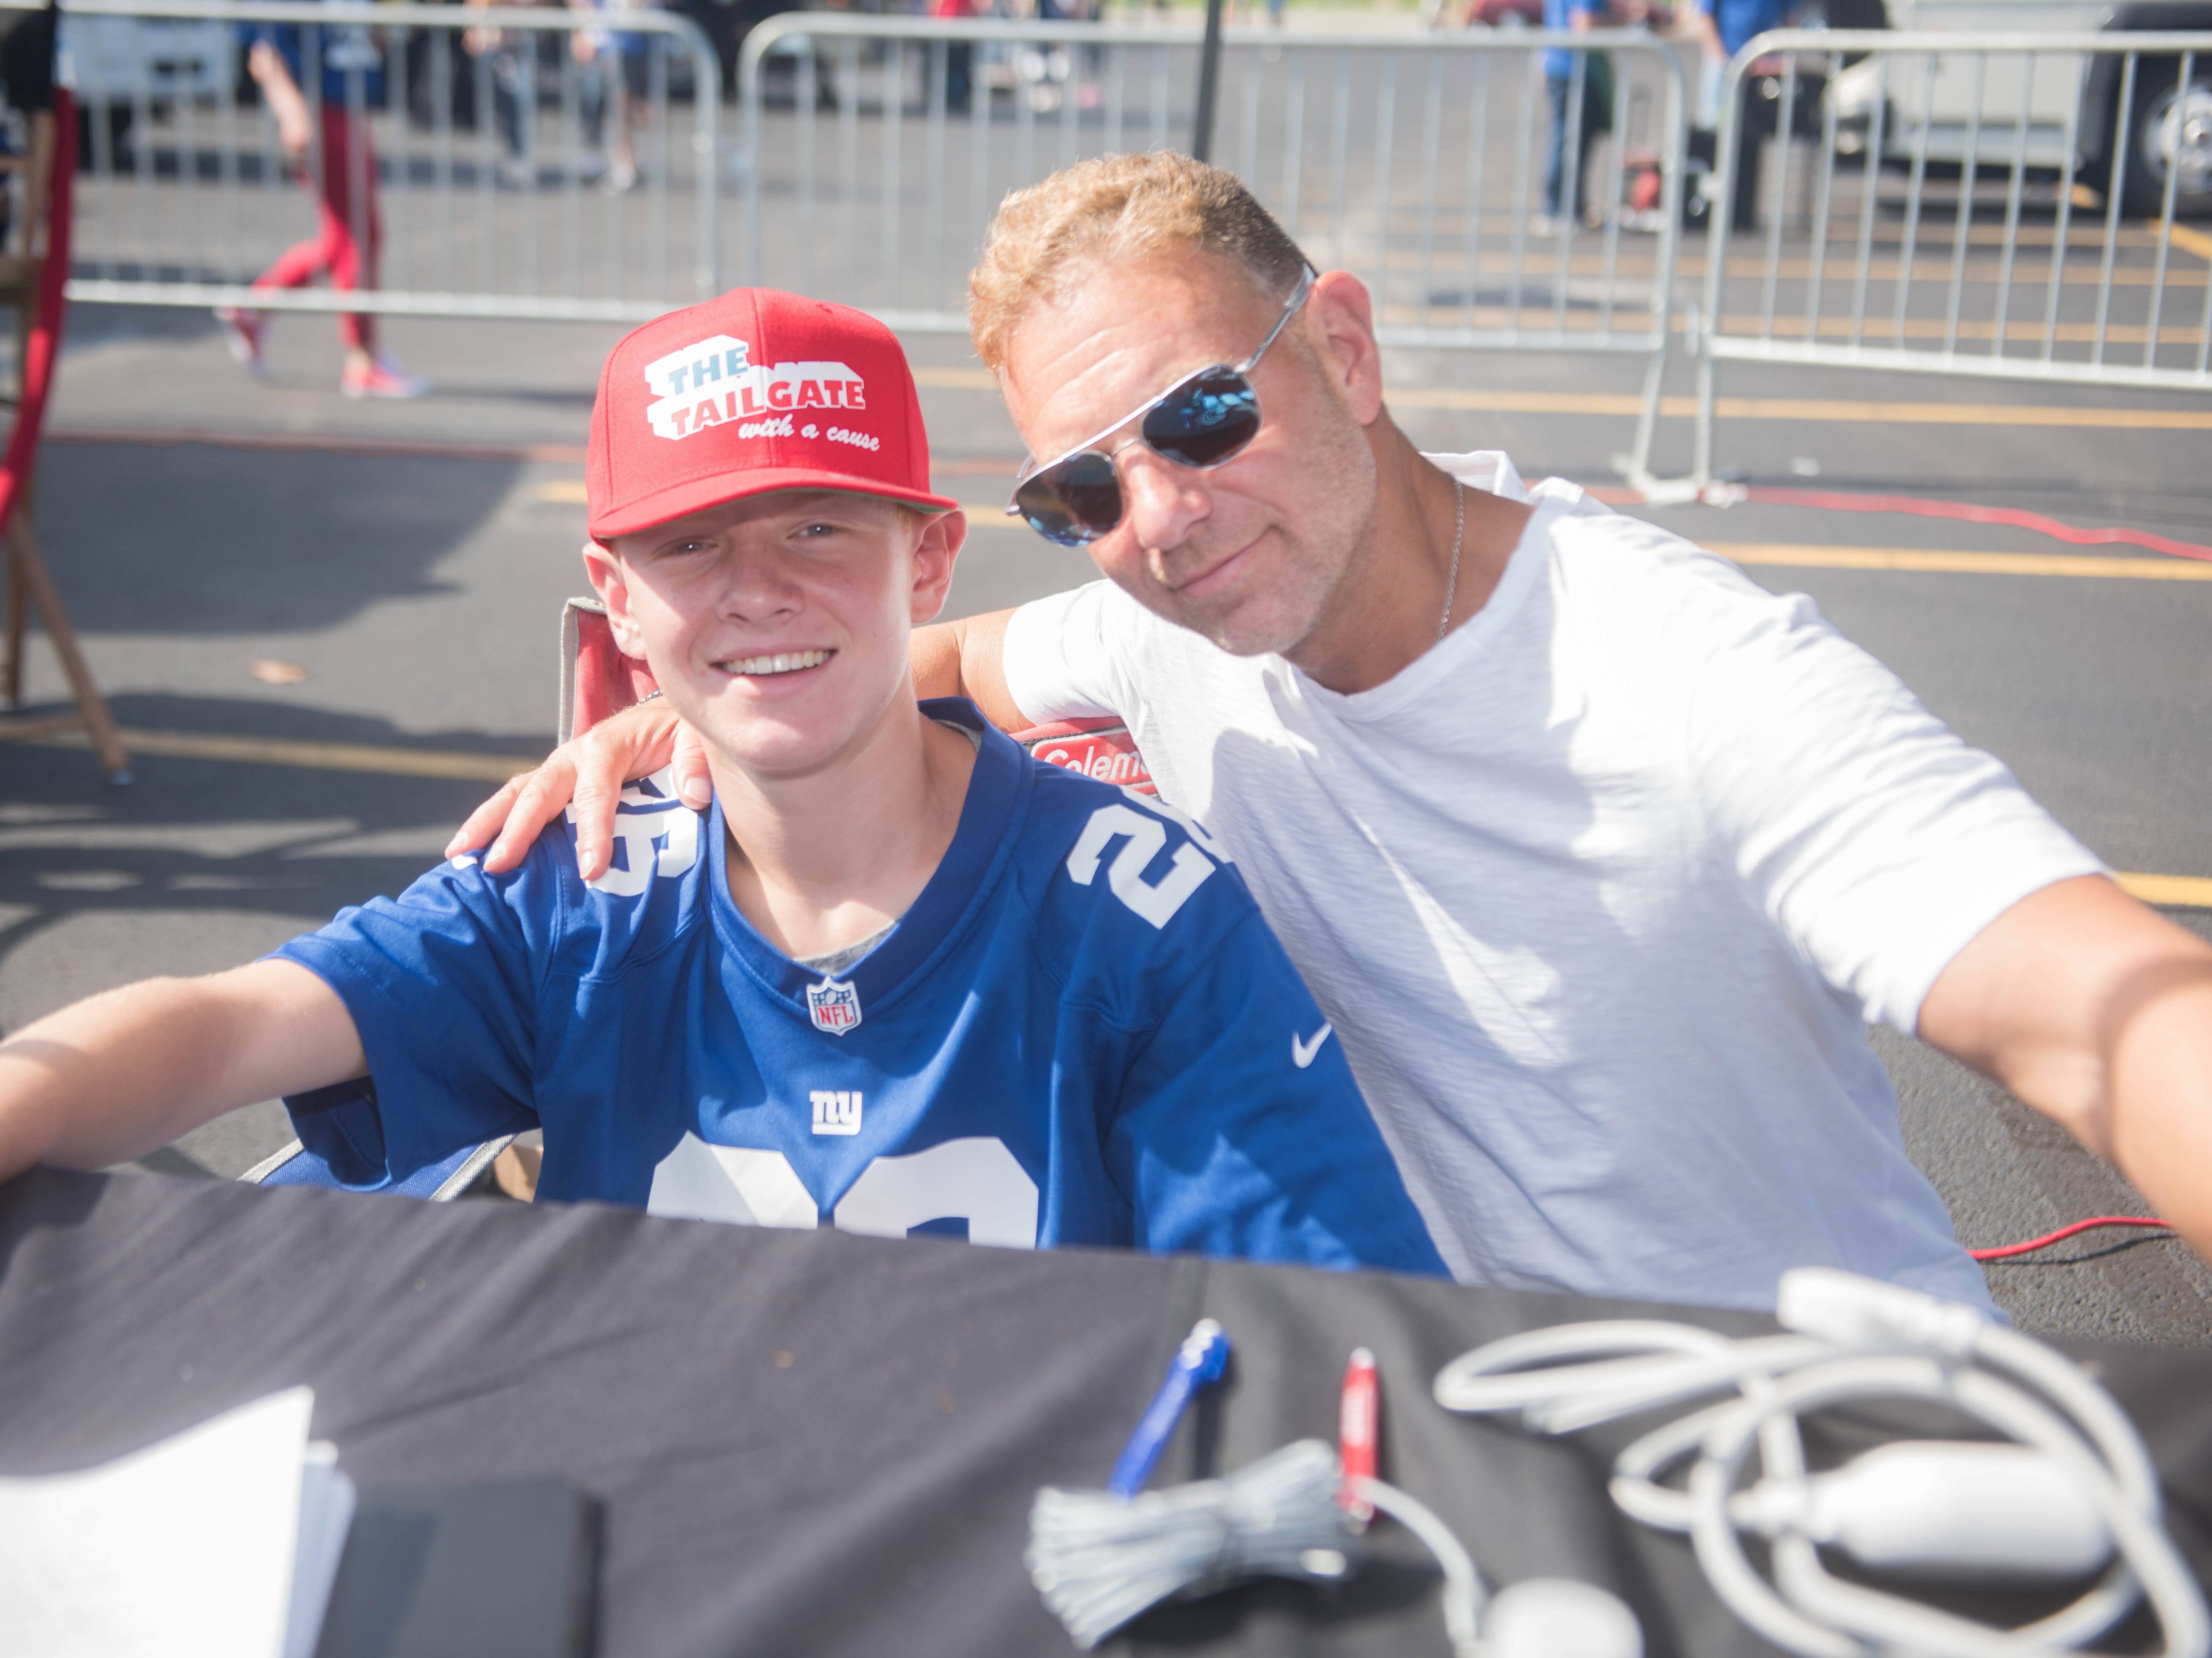 Ryan Kolin and Michael Kolin of the Section 16H Tailgate.org at the Giants vs. Saints tailgate party, Sunday, Sept. 30, 2018.